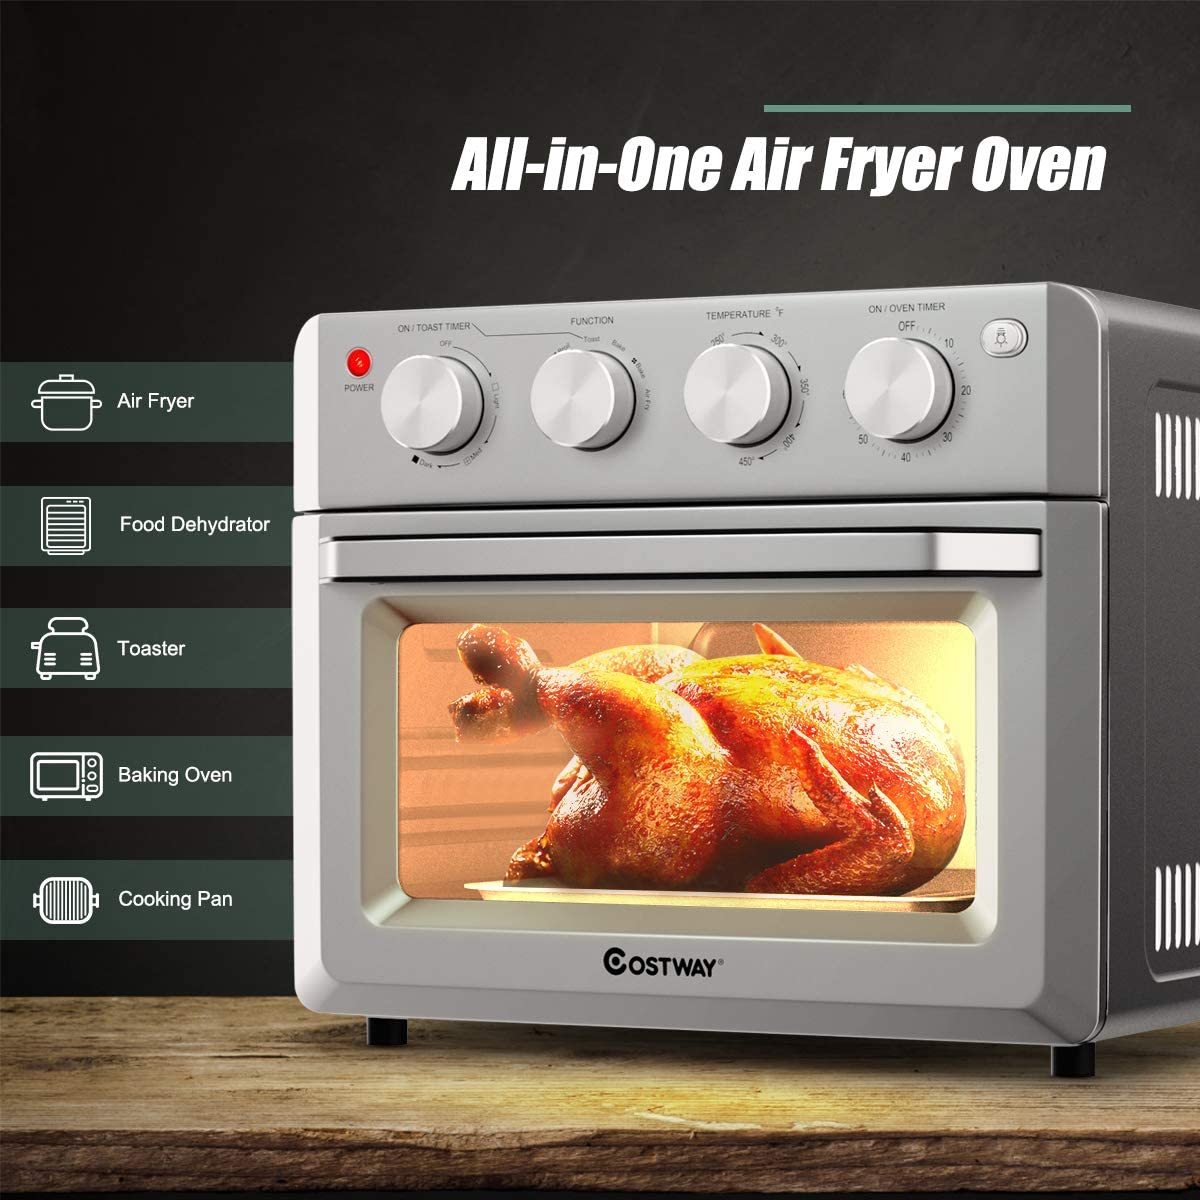 convection-oven-for-airfrying-baking-grilling-drying-cooking